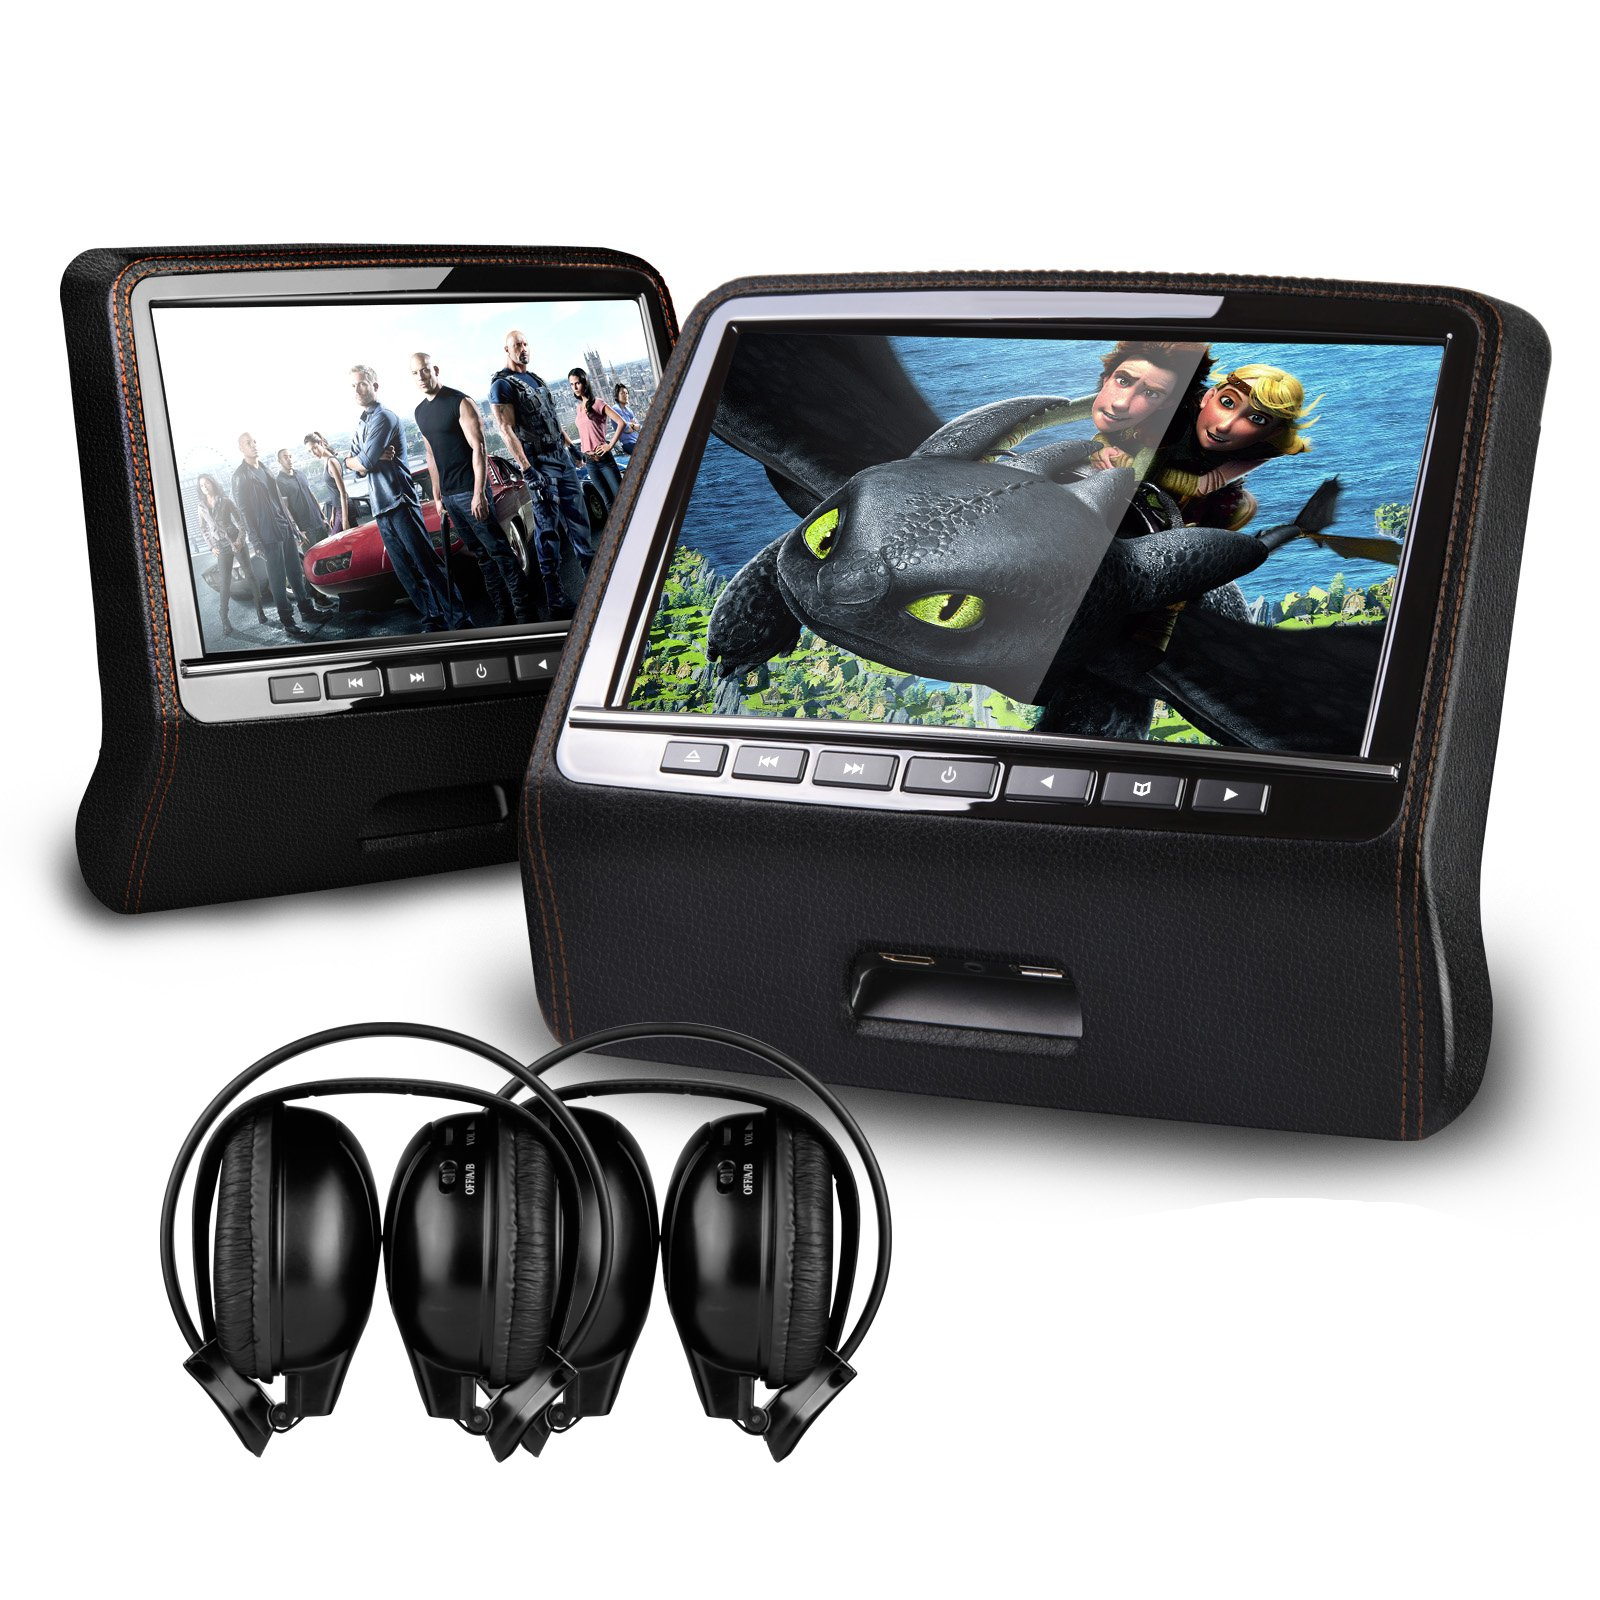 XTRONS Black Twin 2x9'' HD Active Car Pillow Headrest Monitor Portable DVD/USB Player Game HDMI&Black IR Headphones Included